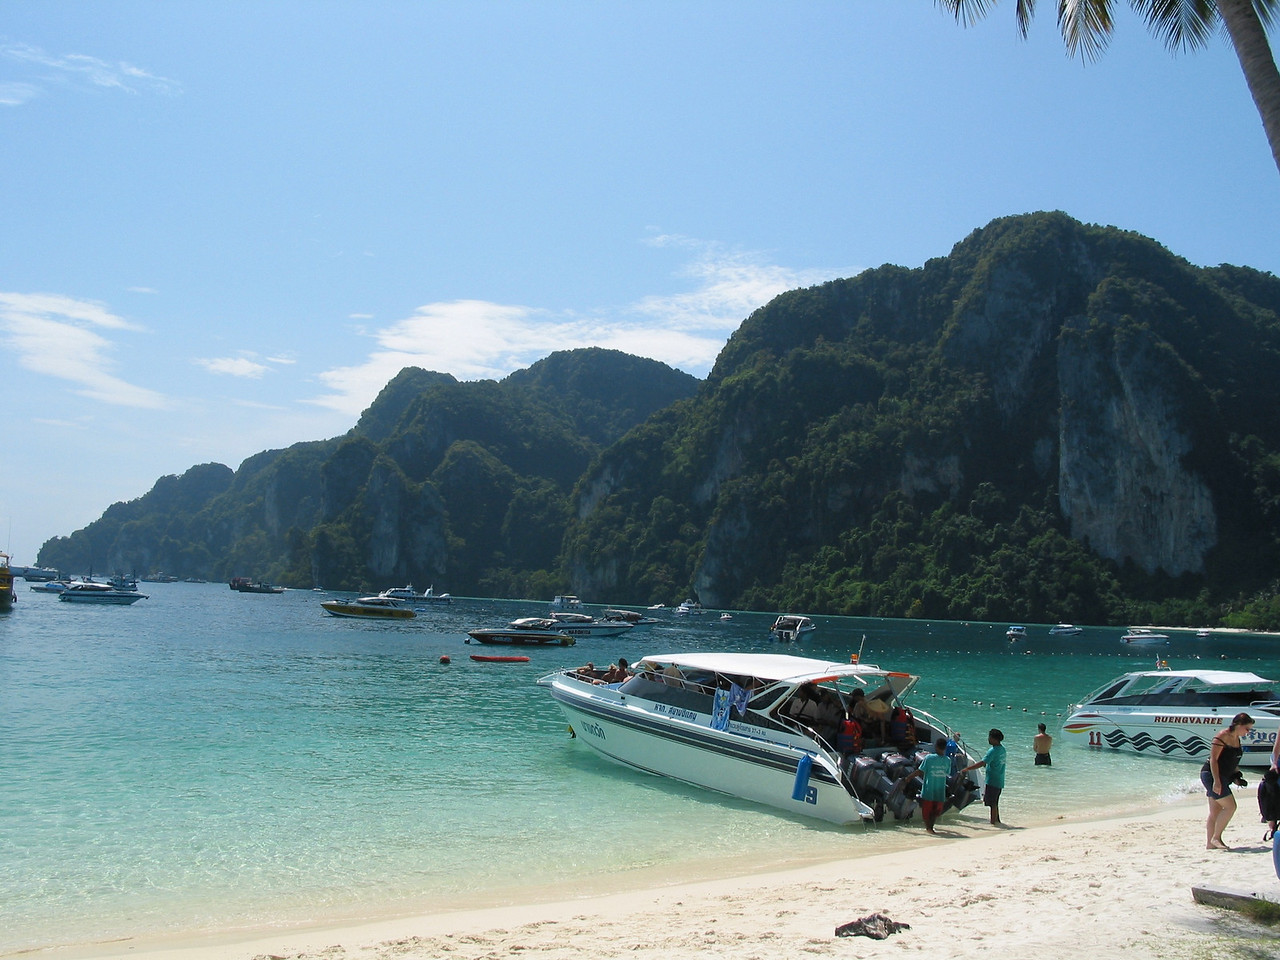 Koh Khai Nok is a great place for a short stop to spend some time on the beach.